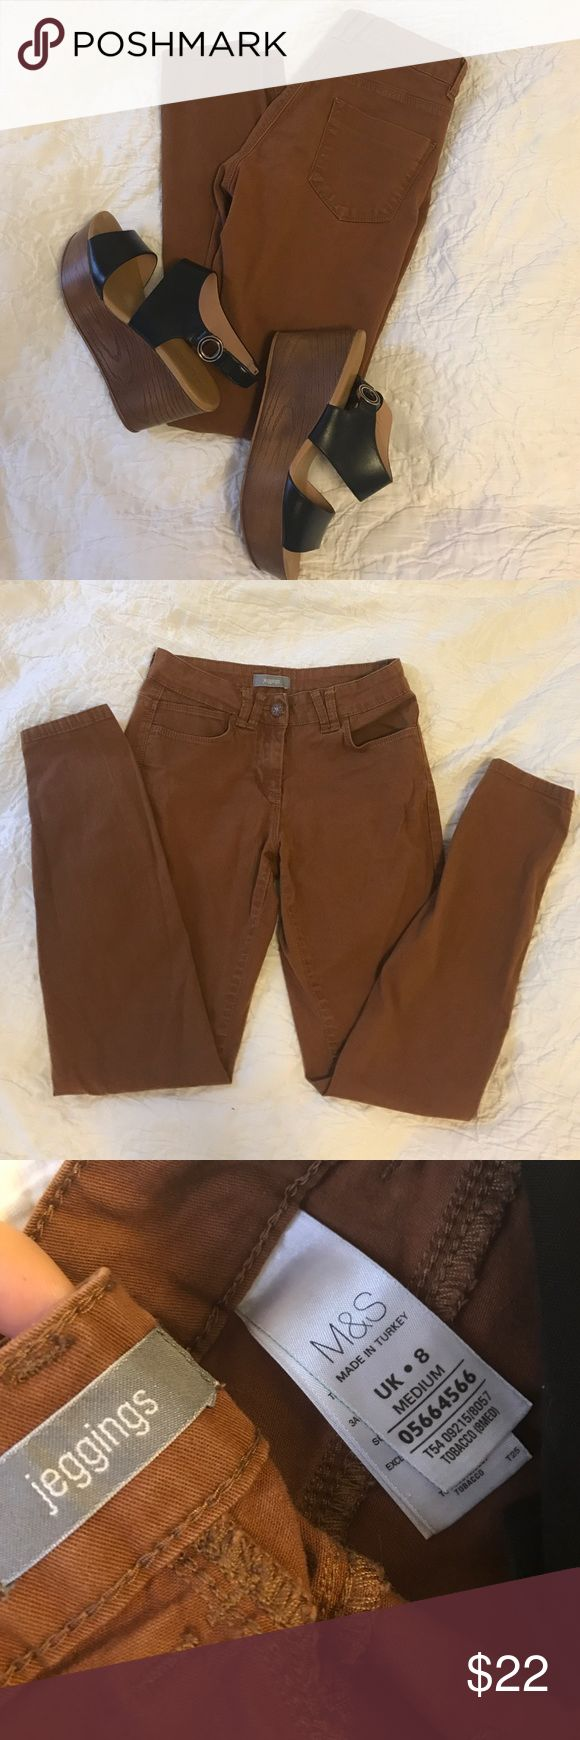 M & S brown jeggings M & S, brown jeggings. So comfortable and flattering on. Downsizing closet or I would keep them. UK size 8, size medium. Excellent condition and only worn a handful of times. Marks & Spencer London Jeans Skinny